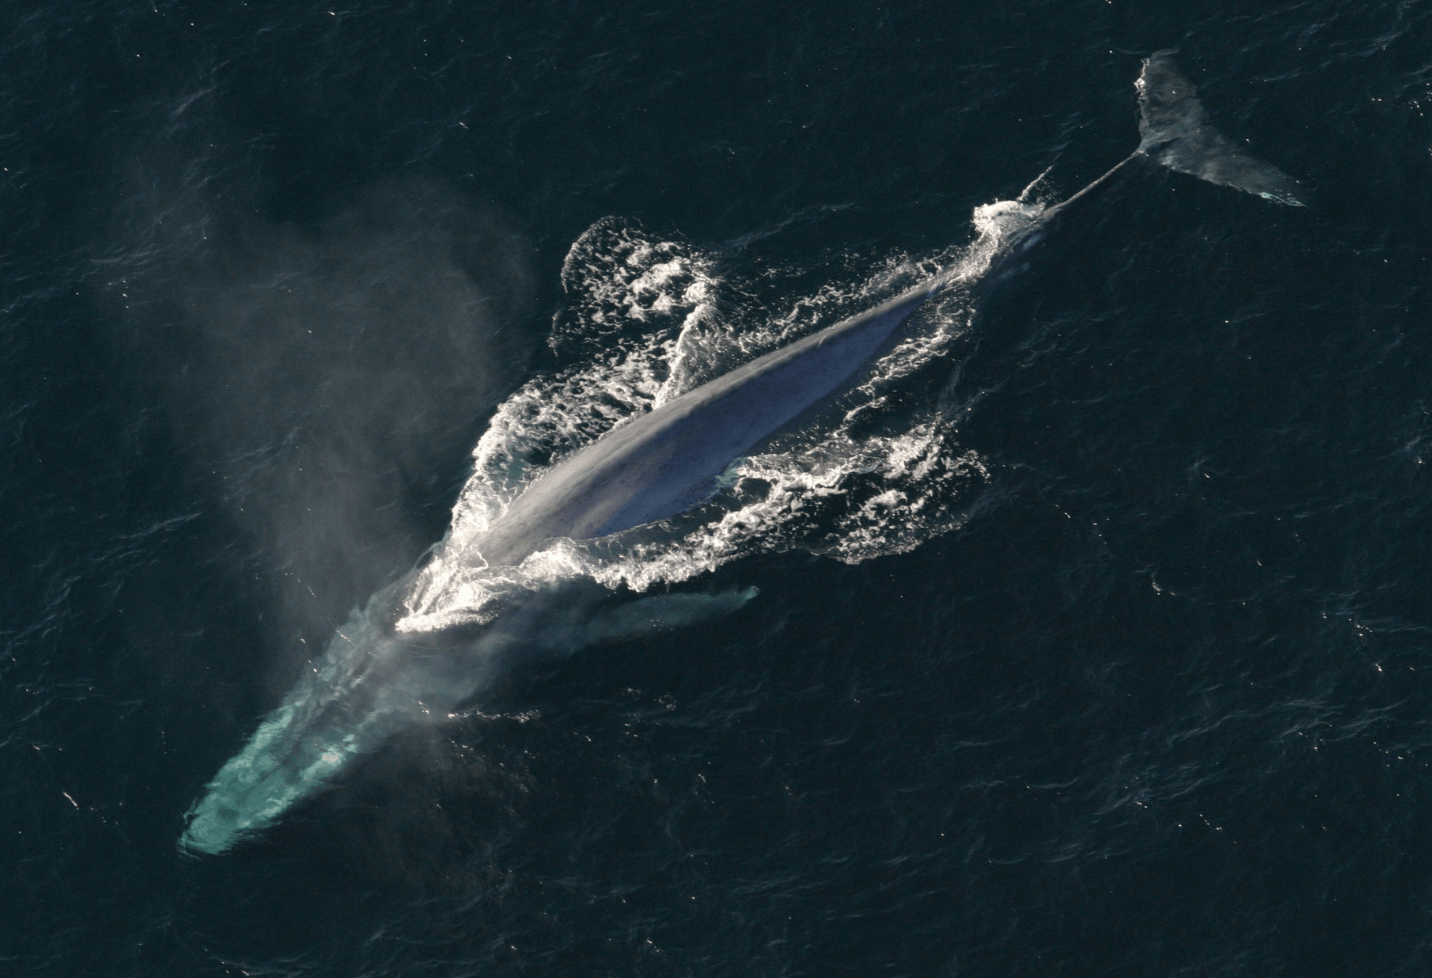 Blue whale swimming in the ocean.